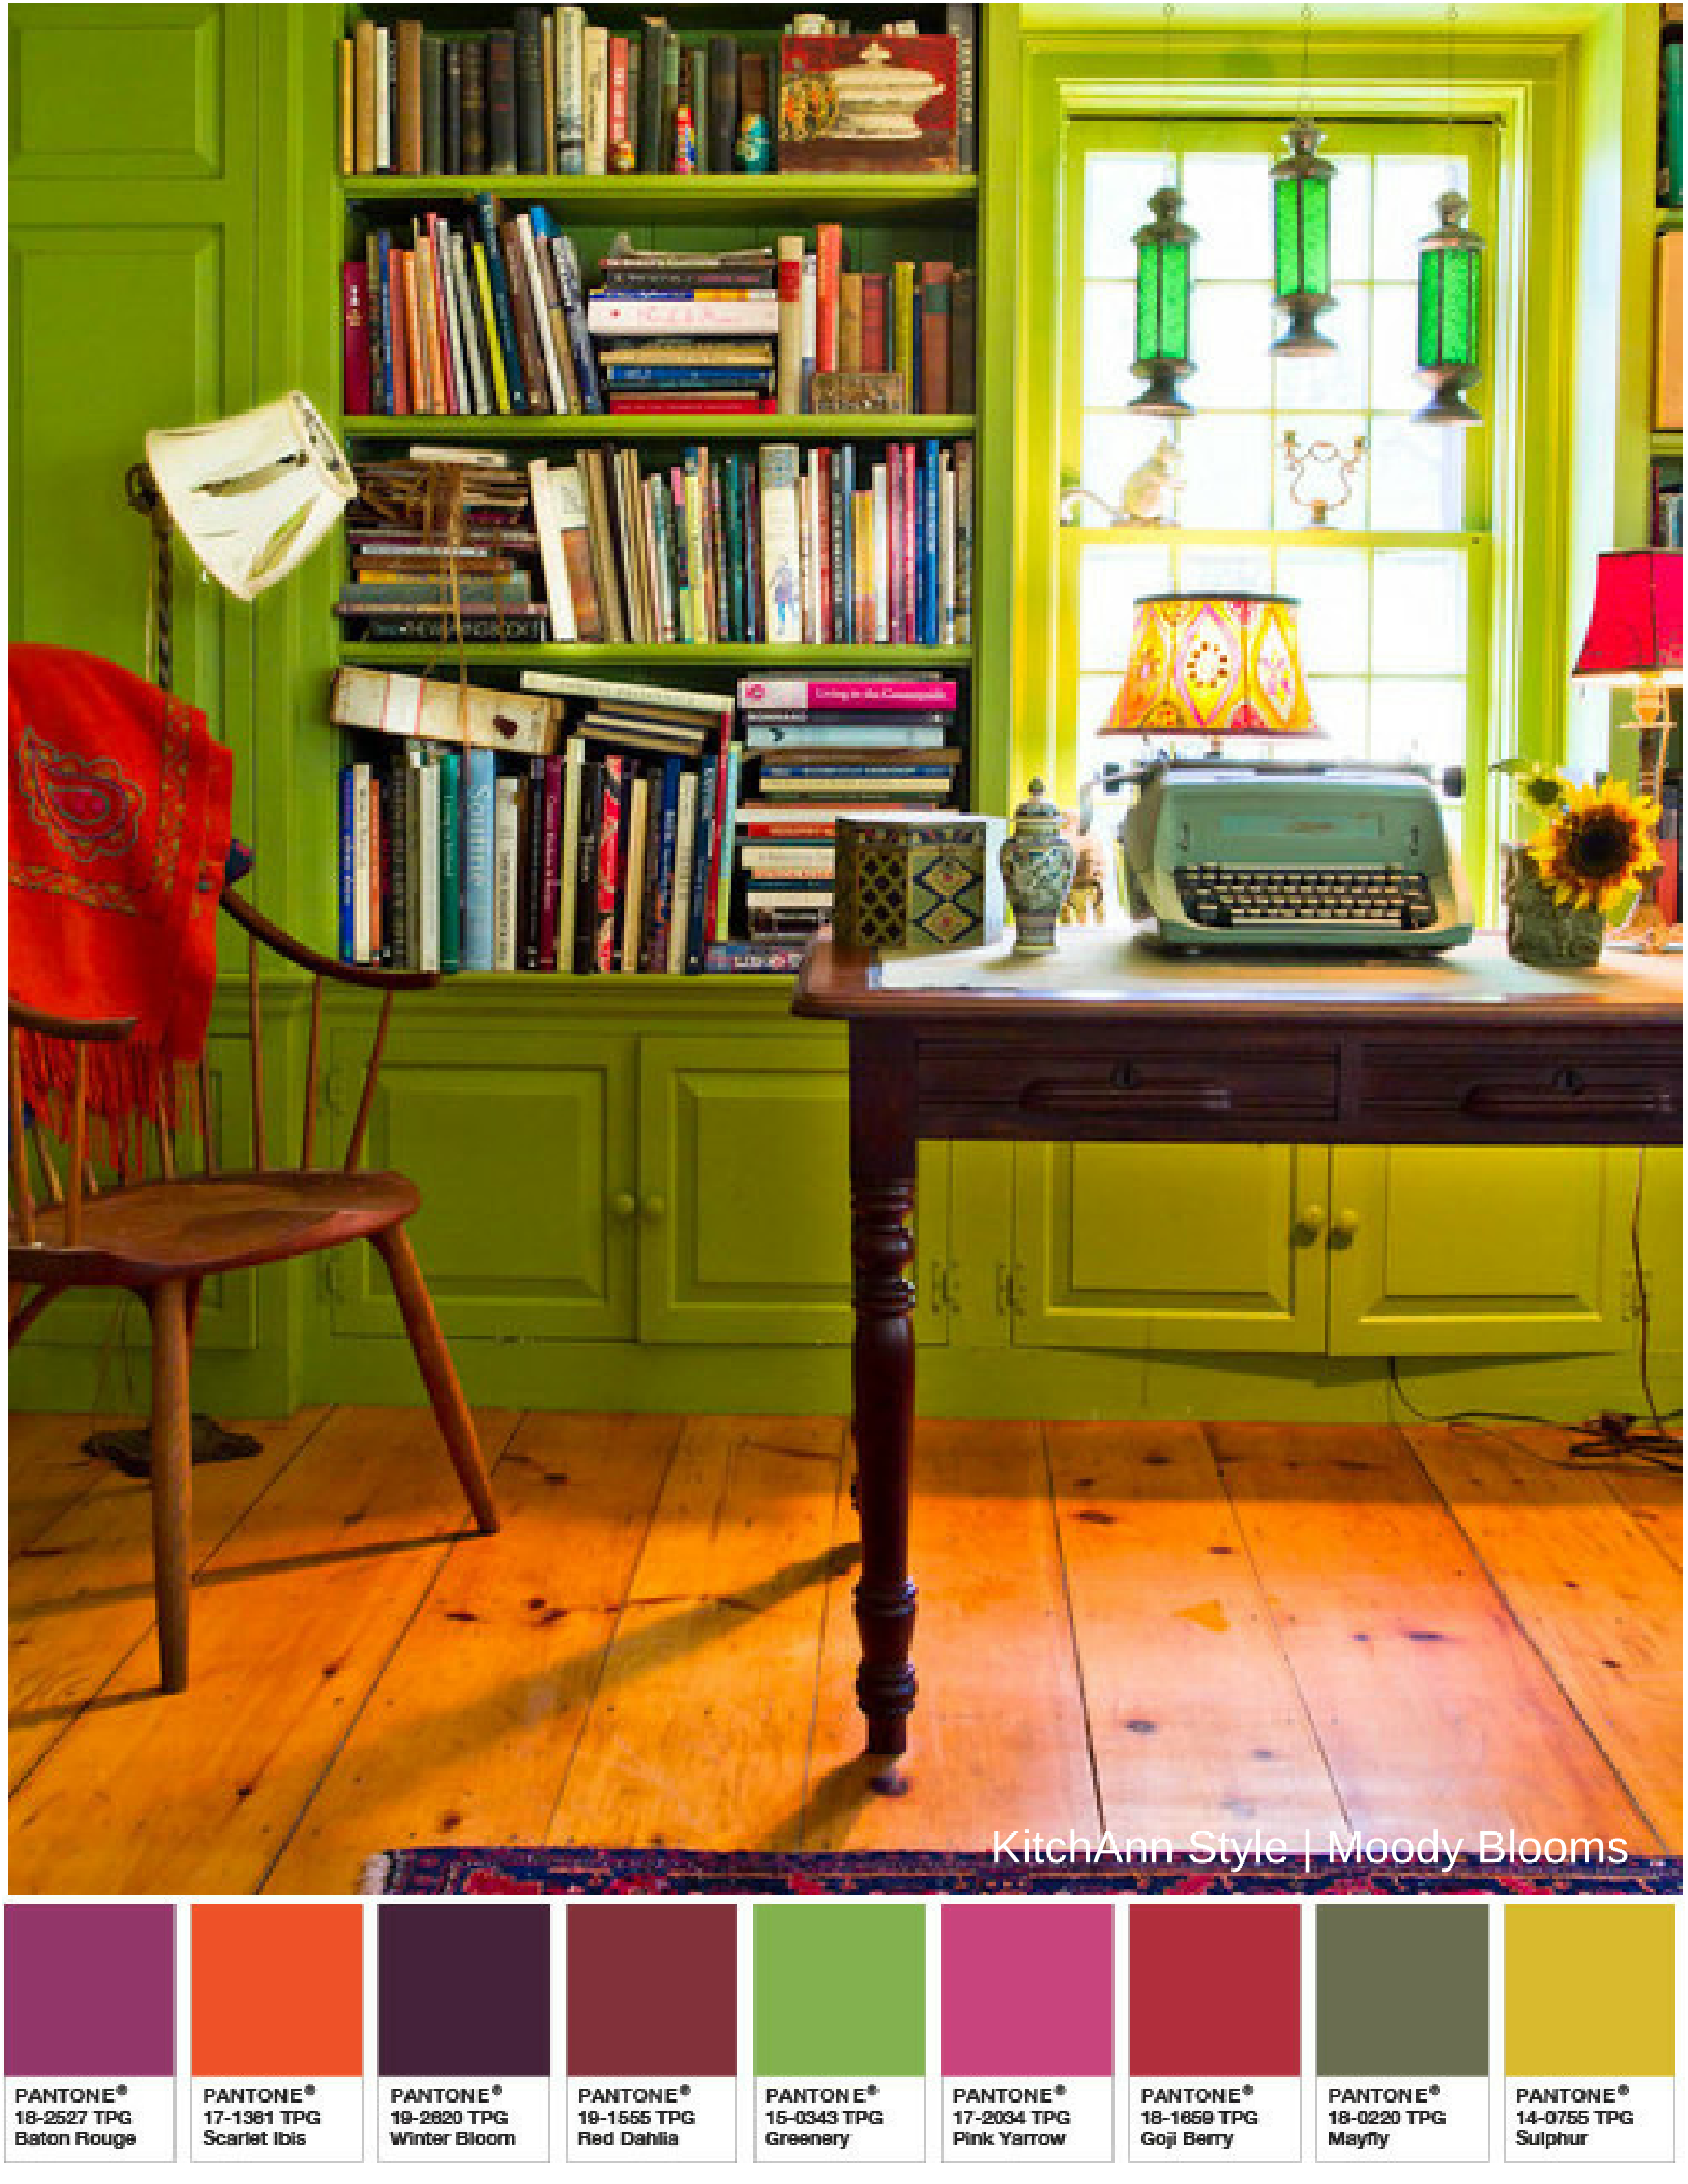 Pantone s colour of the year 2017 greenery in kids rooms - Pantone Color Of The Year 2017